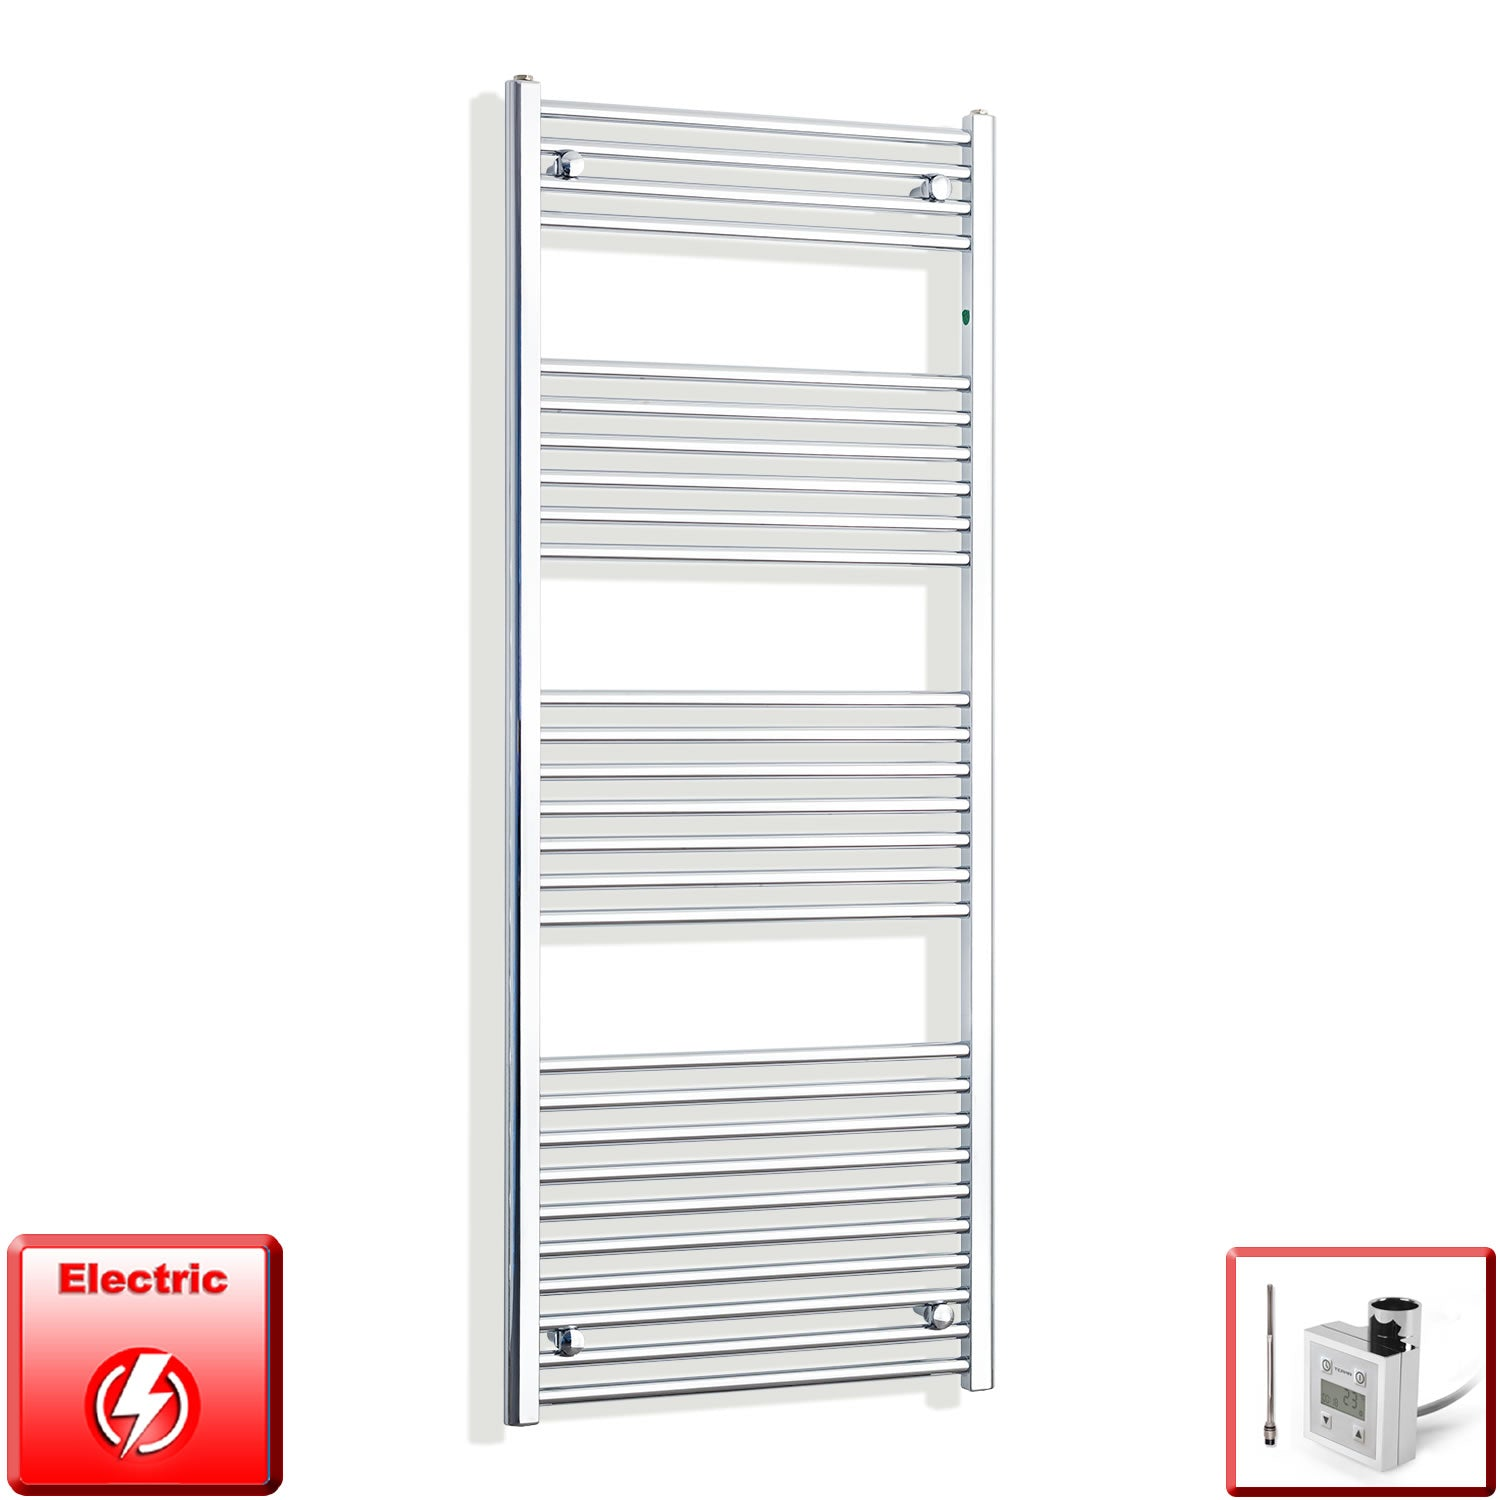 600mm Wide 1600mm High Pre-Filled Chrome Electric Towel Rail Radiator With Thermostatic KTX3 Element